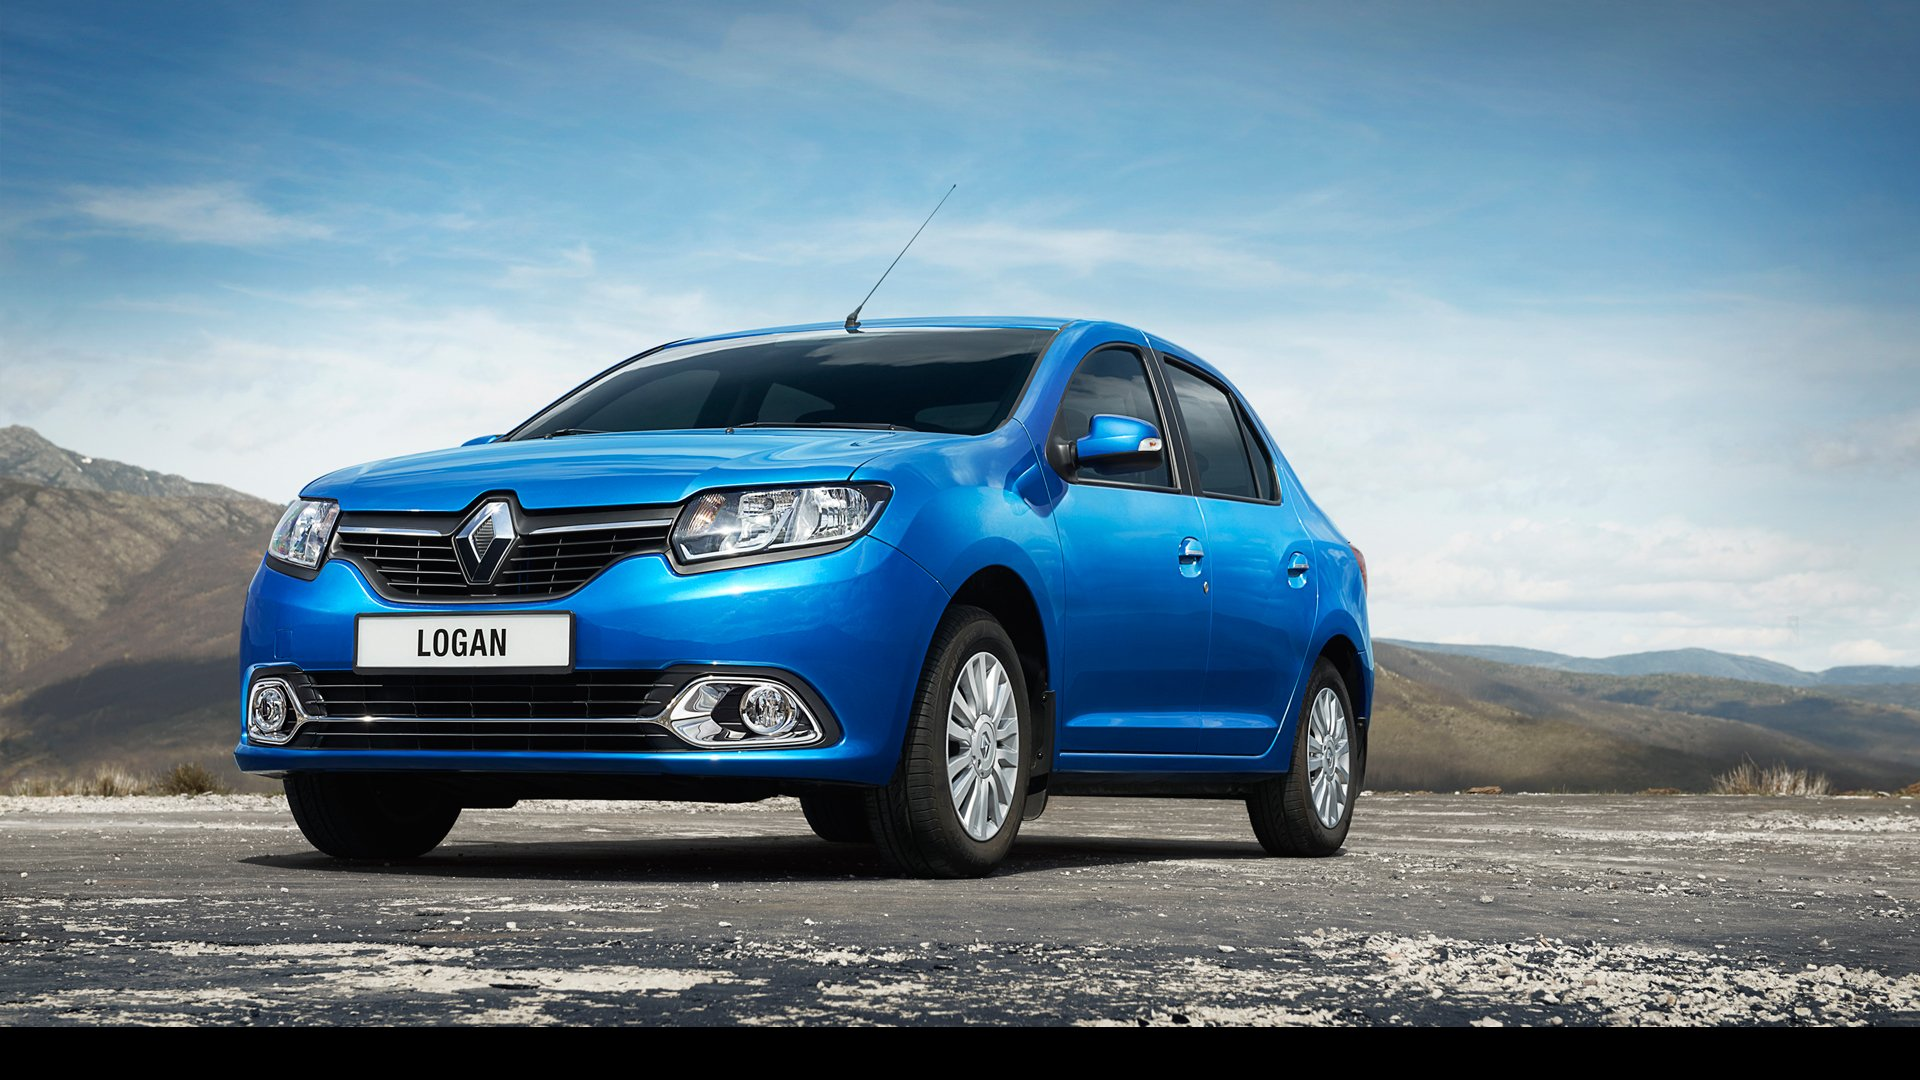 new-renault-logan (19)